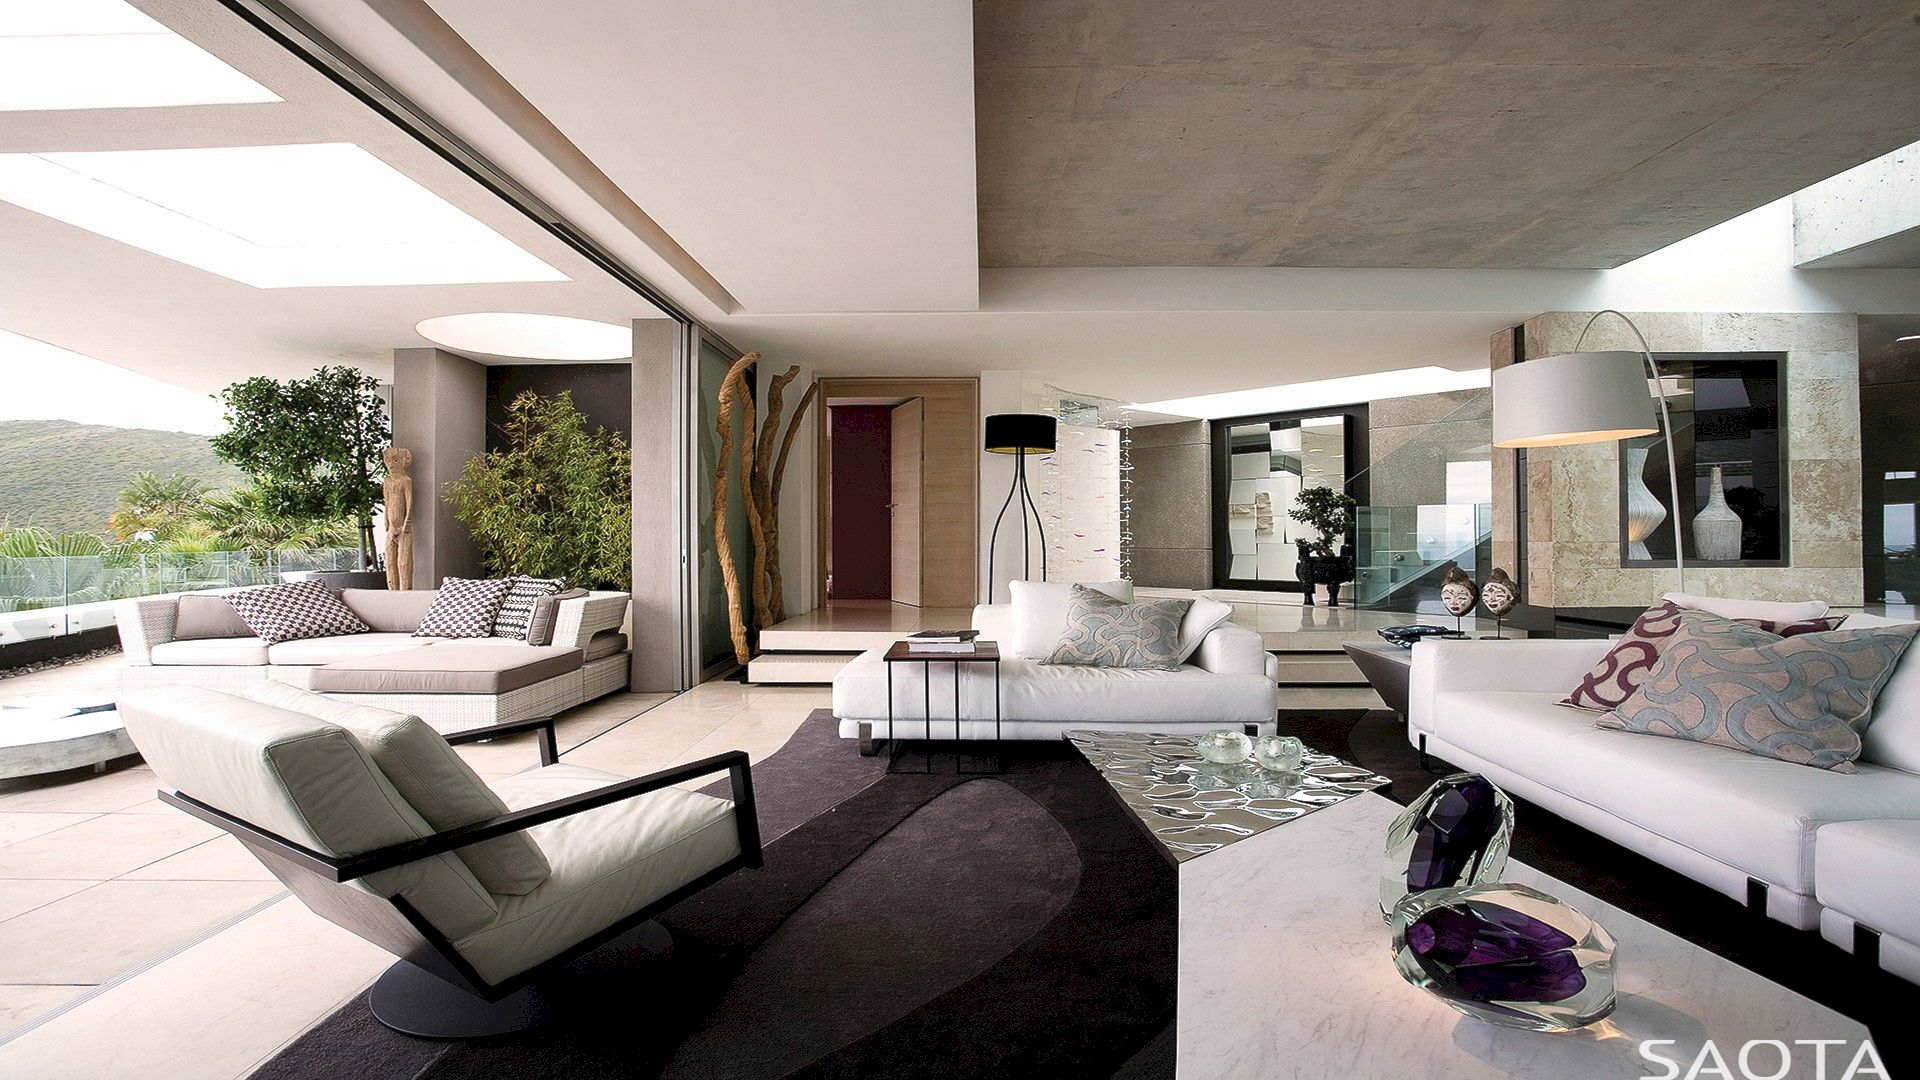 LGV 5 By SAOTA Architecture And Design 10